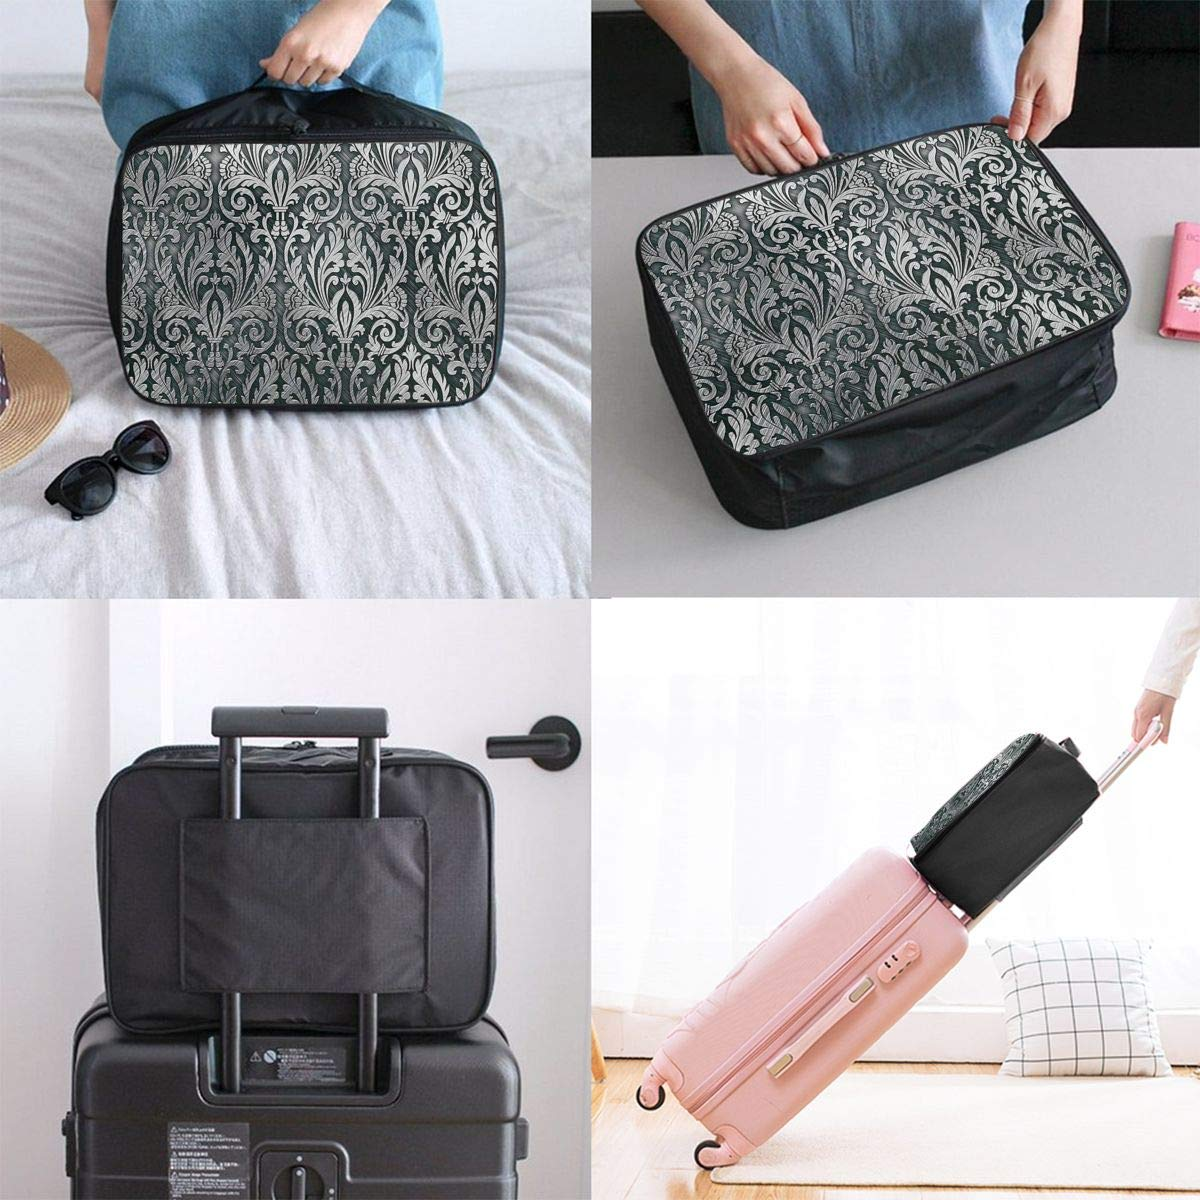 ADGAI Graphic with Classic Floral Ornaments Canvas Travel Weekender Bag,Fashion Custom Lightweight Large Capacity Portable Luggage Bag,Suitcase Trolley Bag